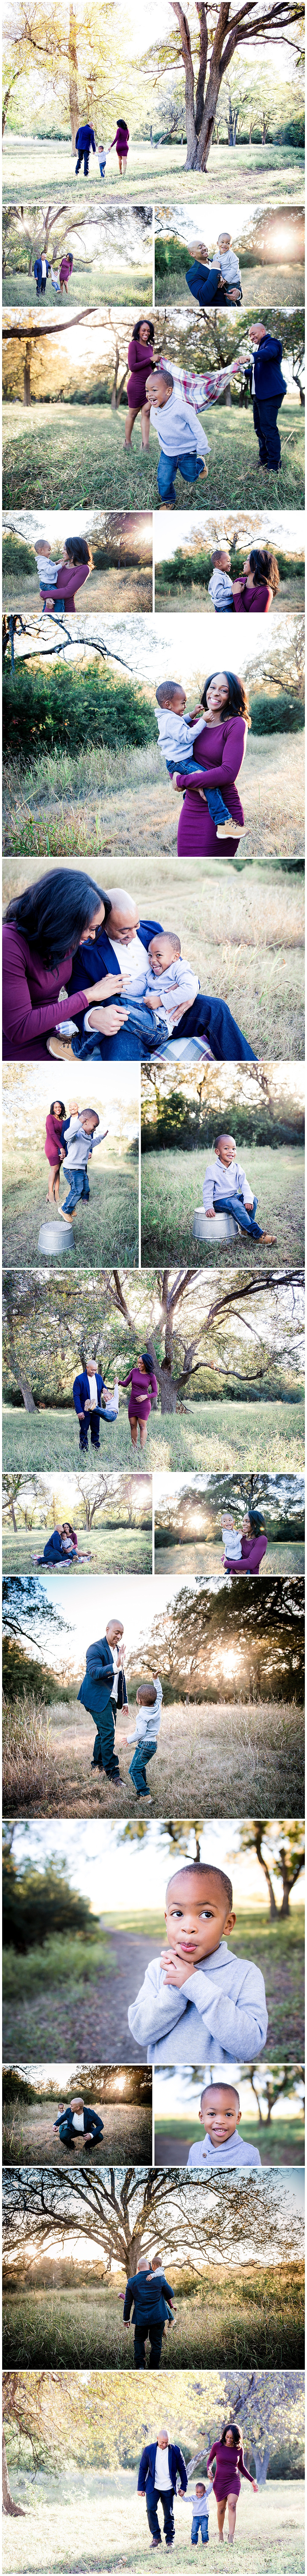 Dallas Family photographer, family photo session with toddler, toddler boy